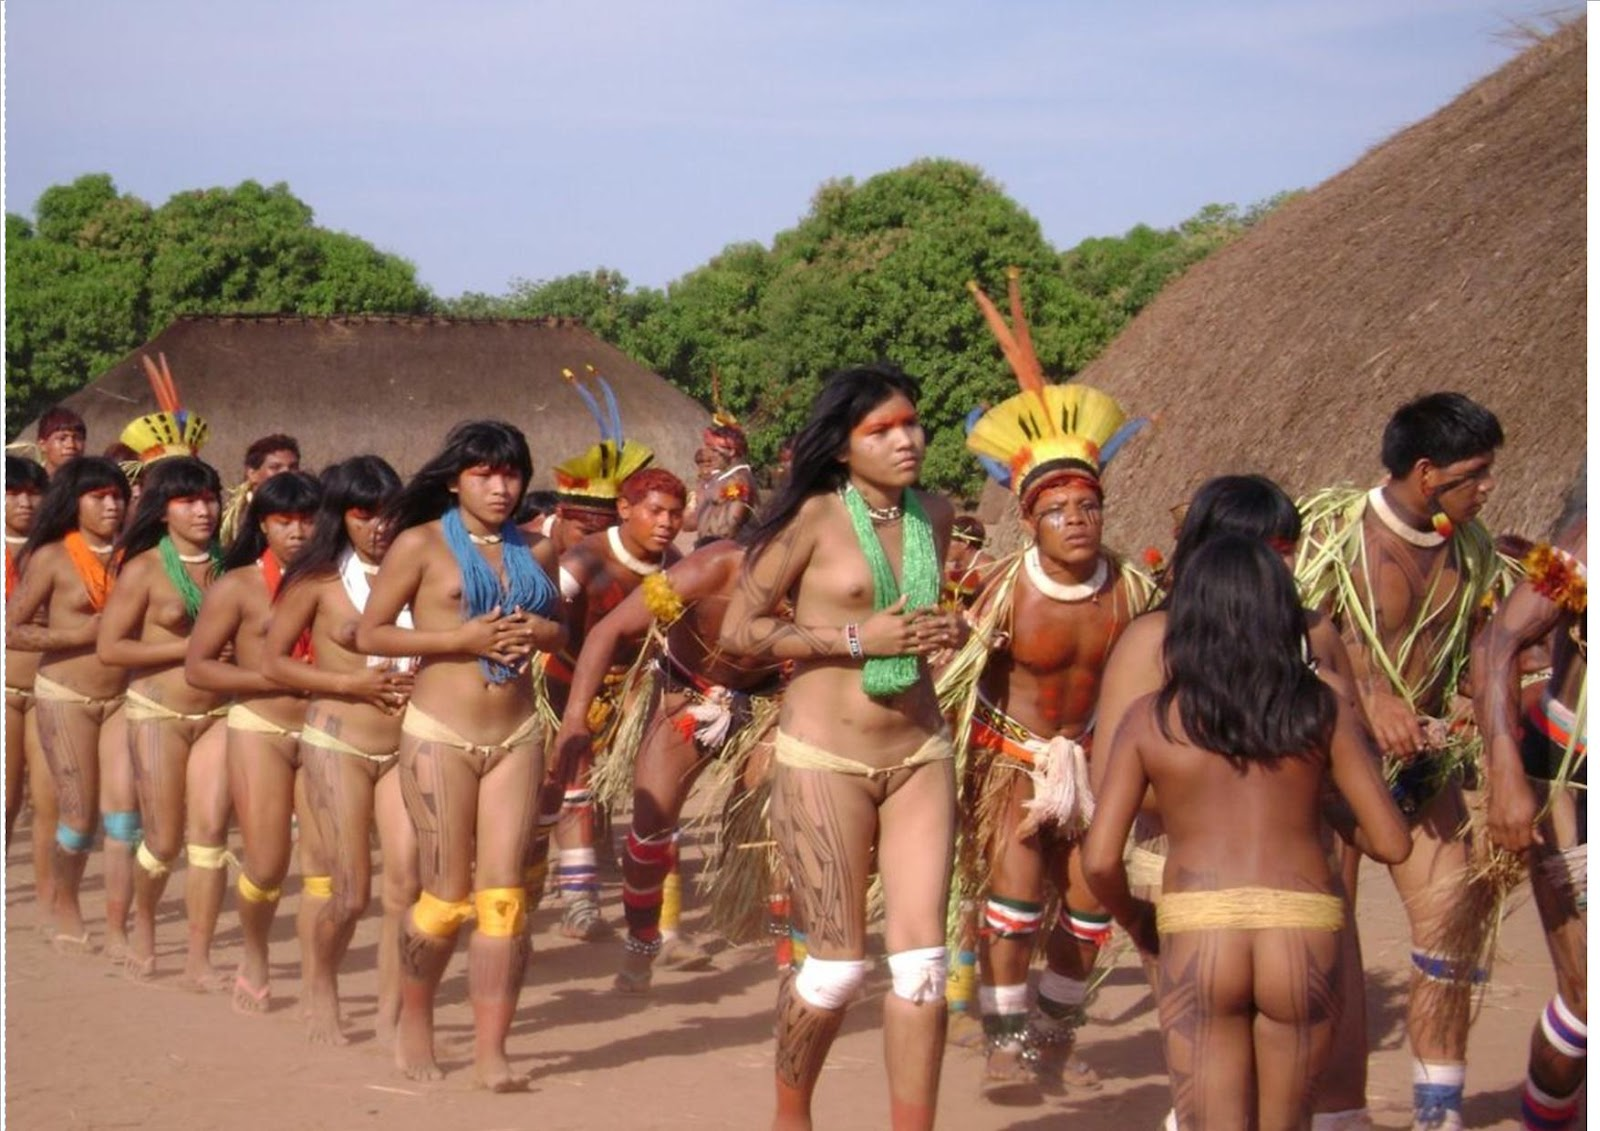 Naked native tribe foto fucked video